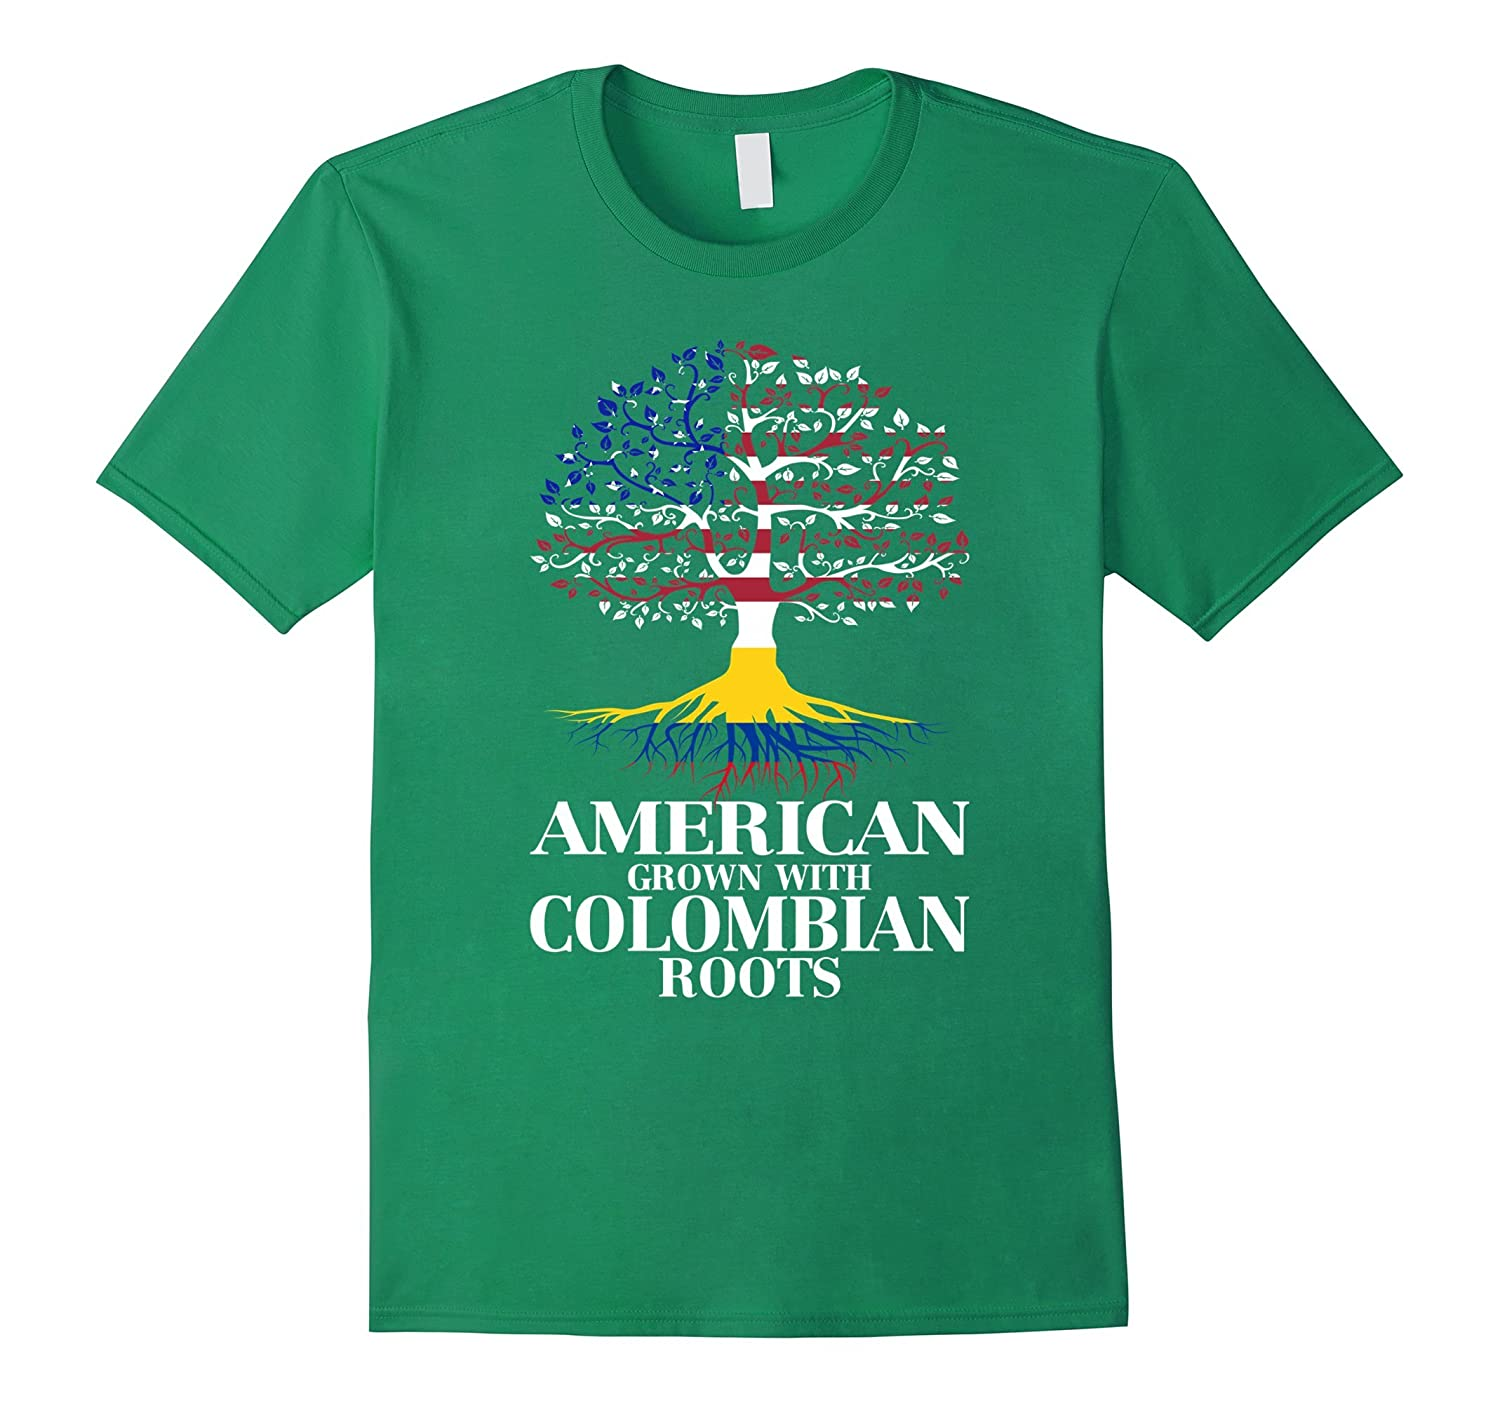 American Grown With COLOMBIAN Roots T-Shirt Tshirt-BN